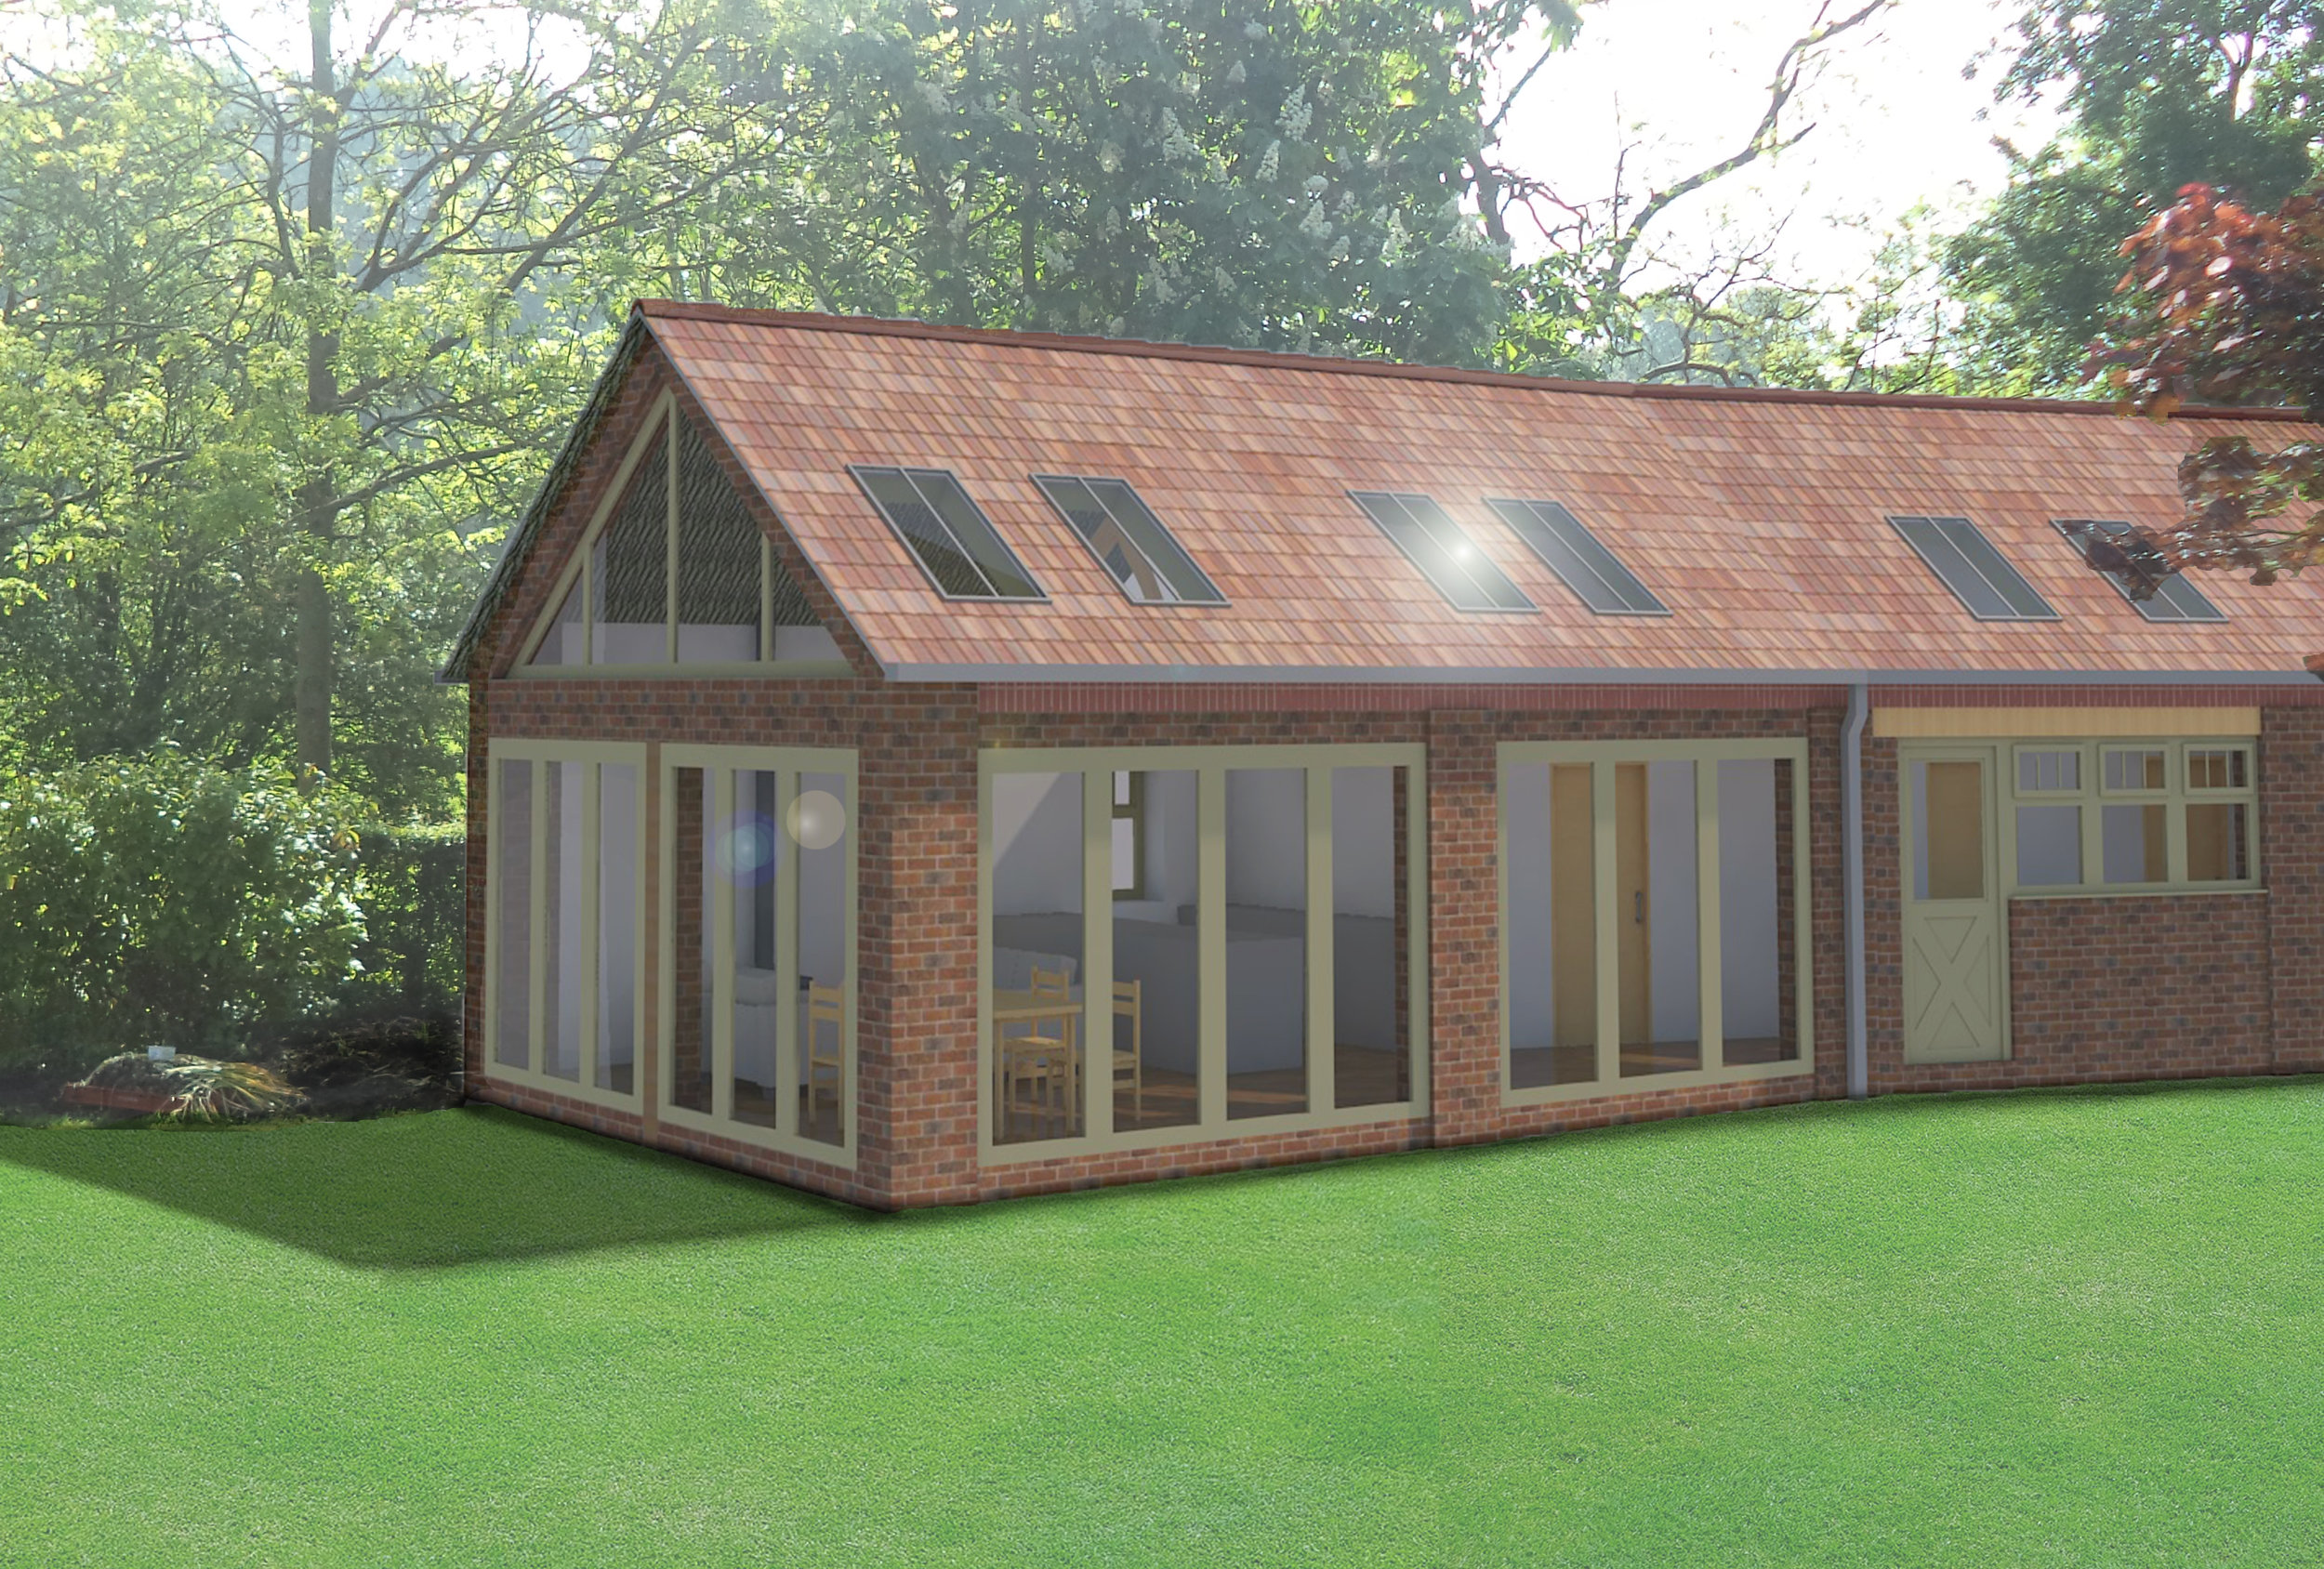 New Building Dwelling Approved in Open Countryside